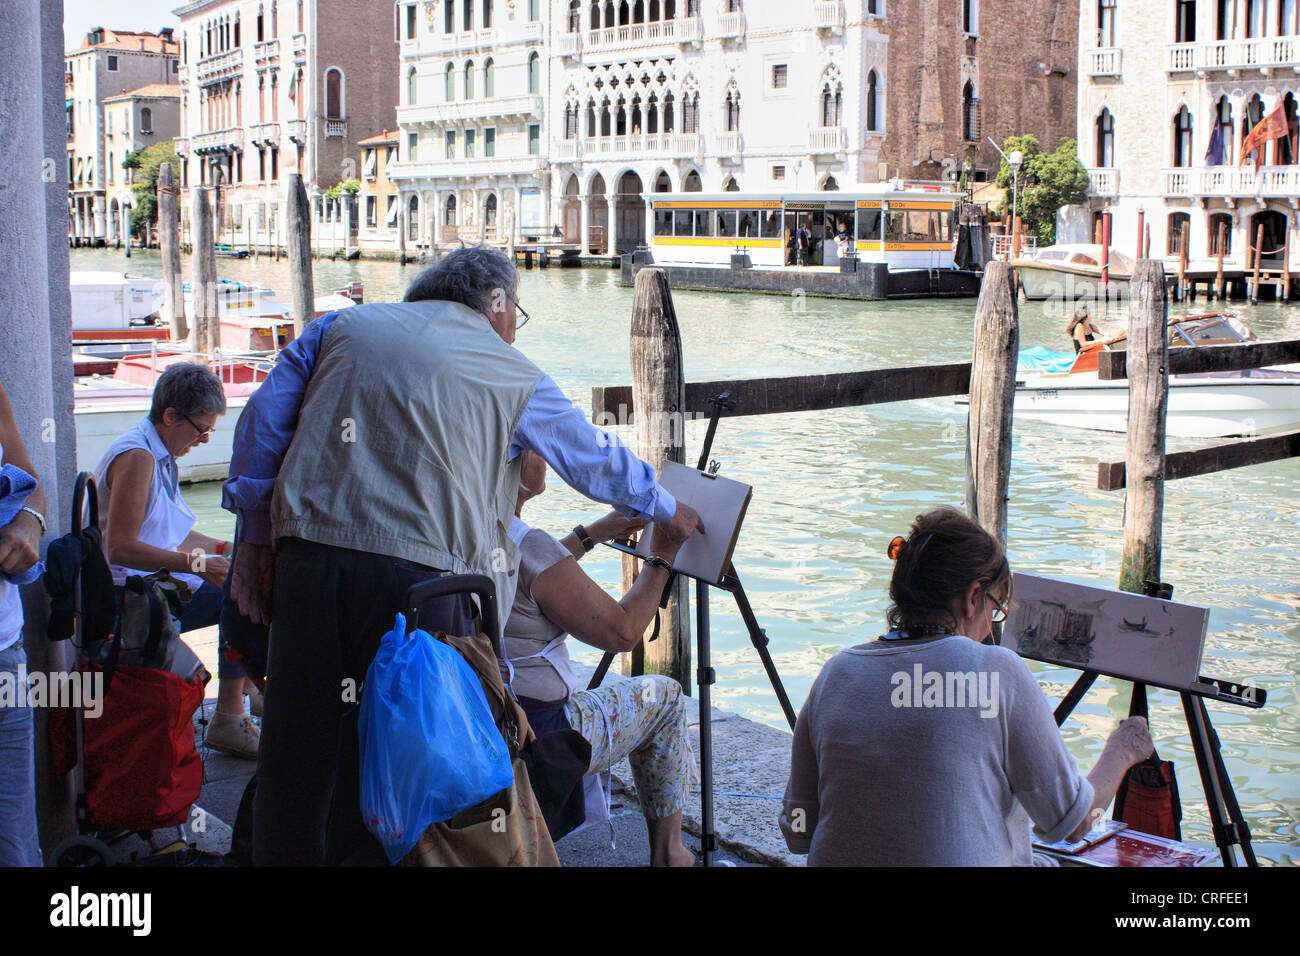 Painting classes in Venice - Stock Image